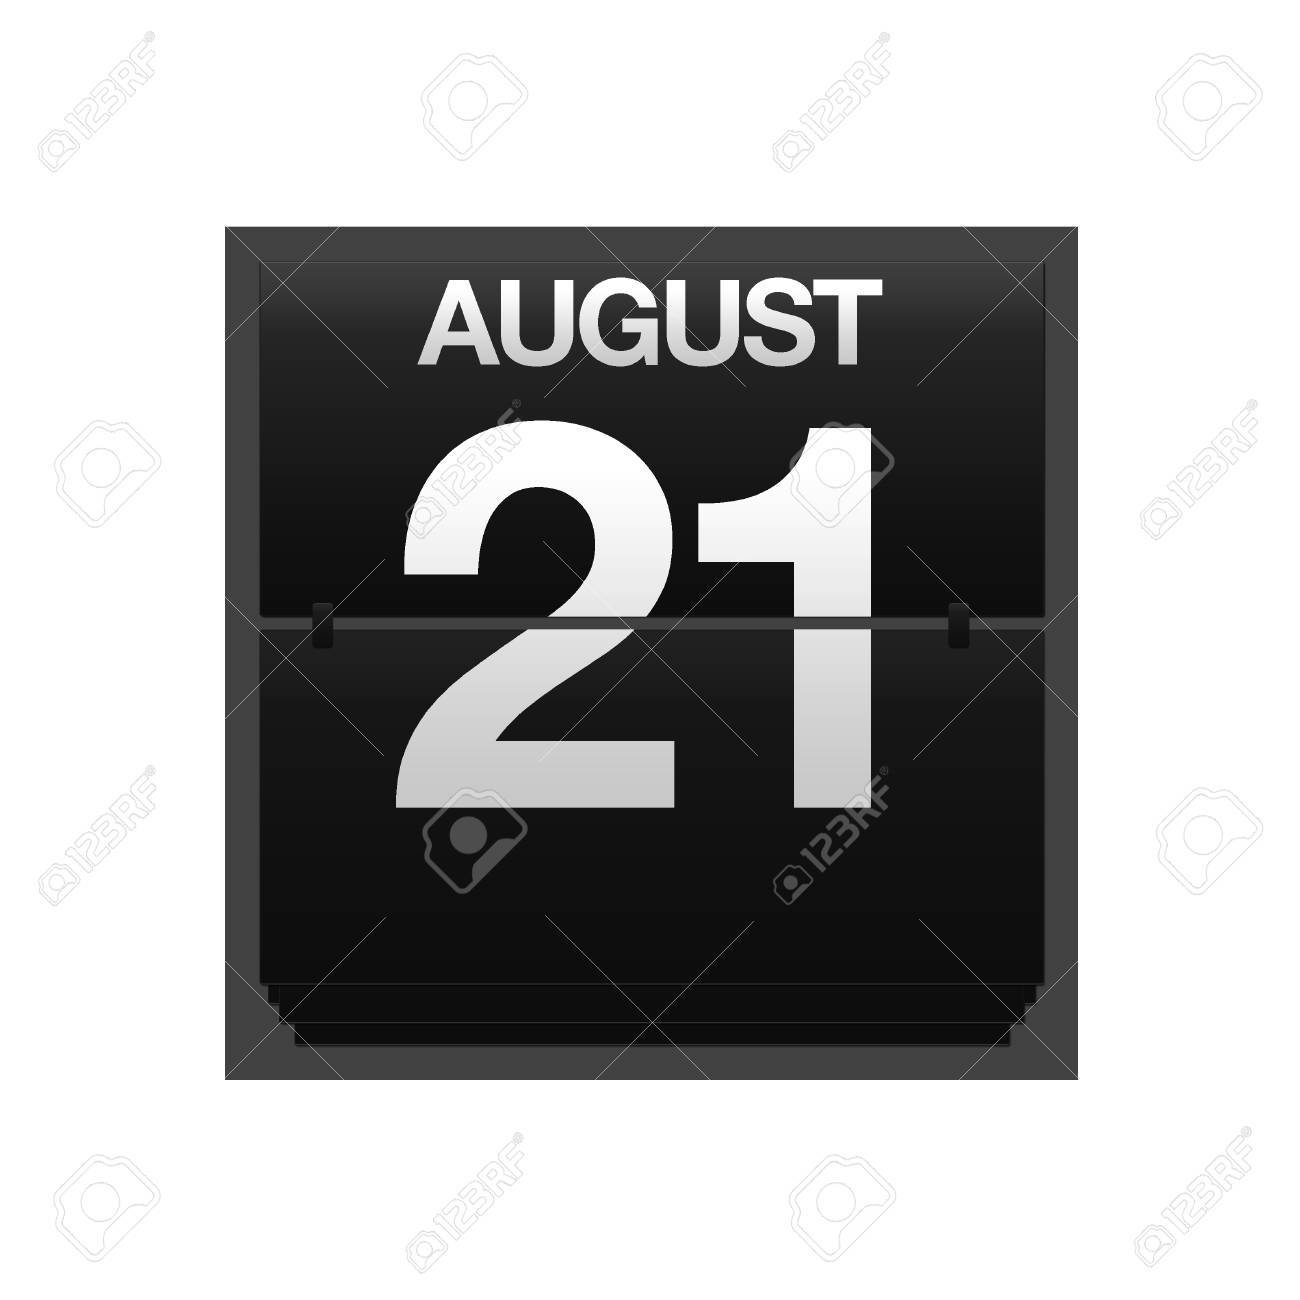 Illustration with a counter calendar august 21 Stock Illustration - 15707419